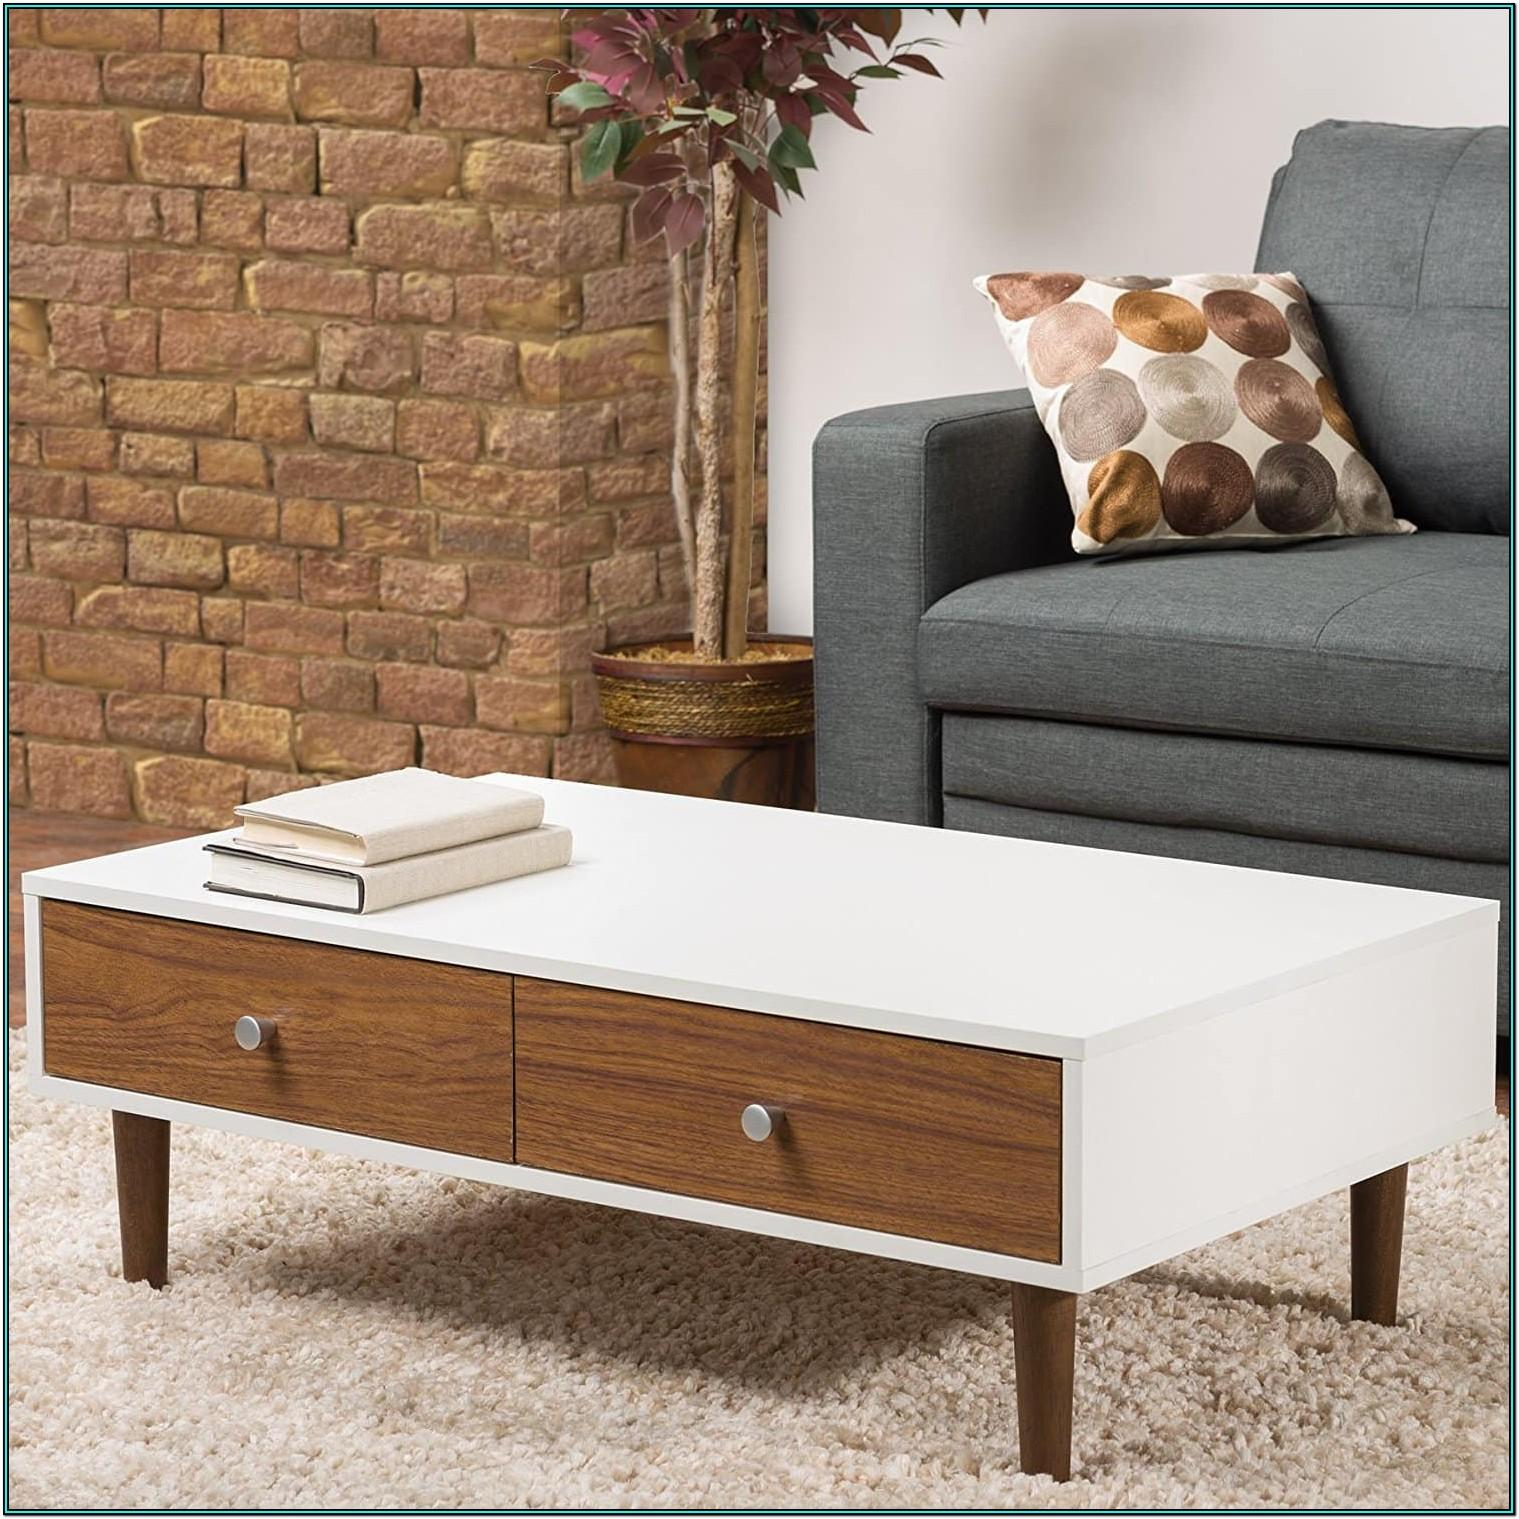 Living Room Small Coffee Table